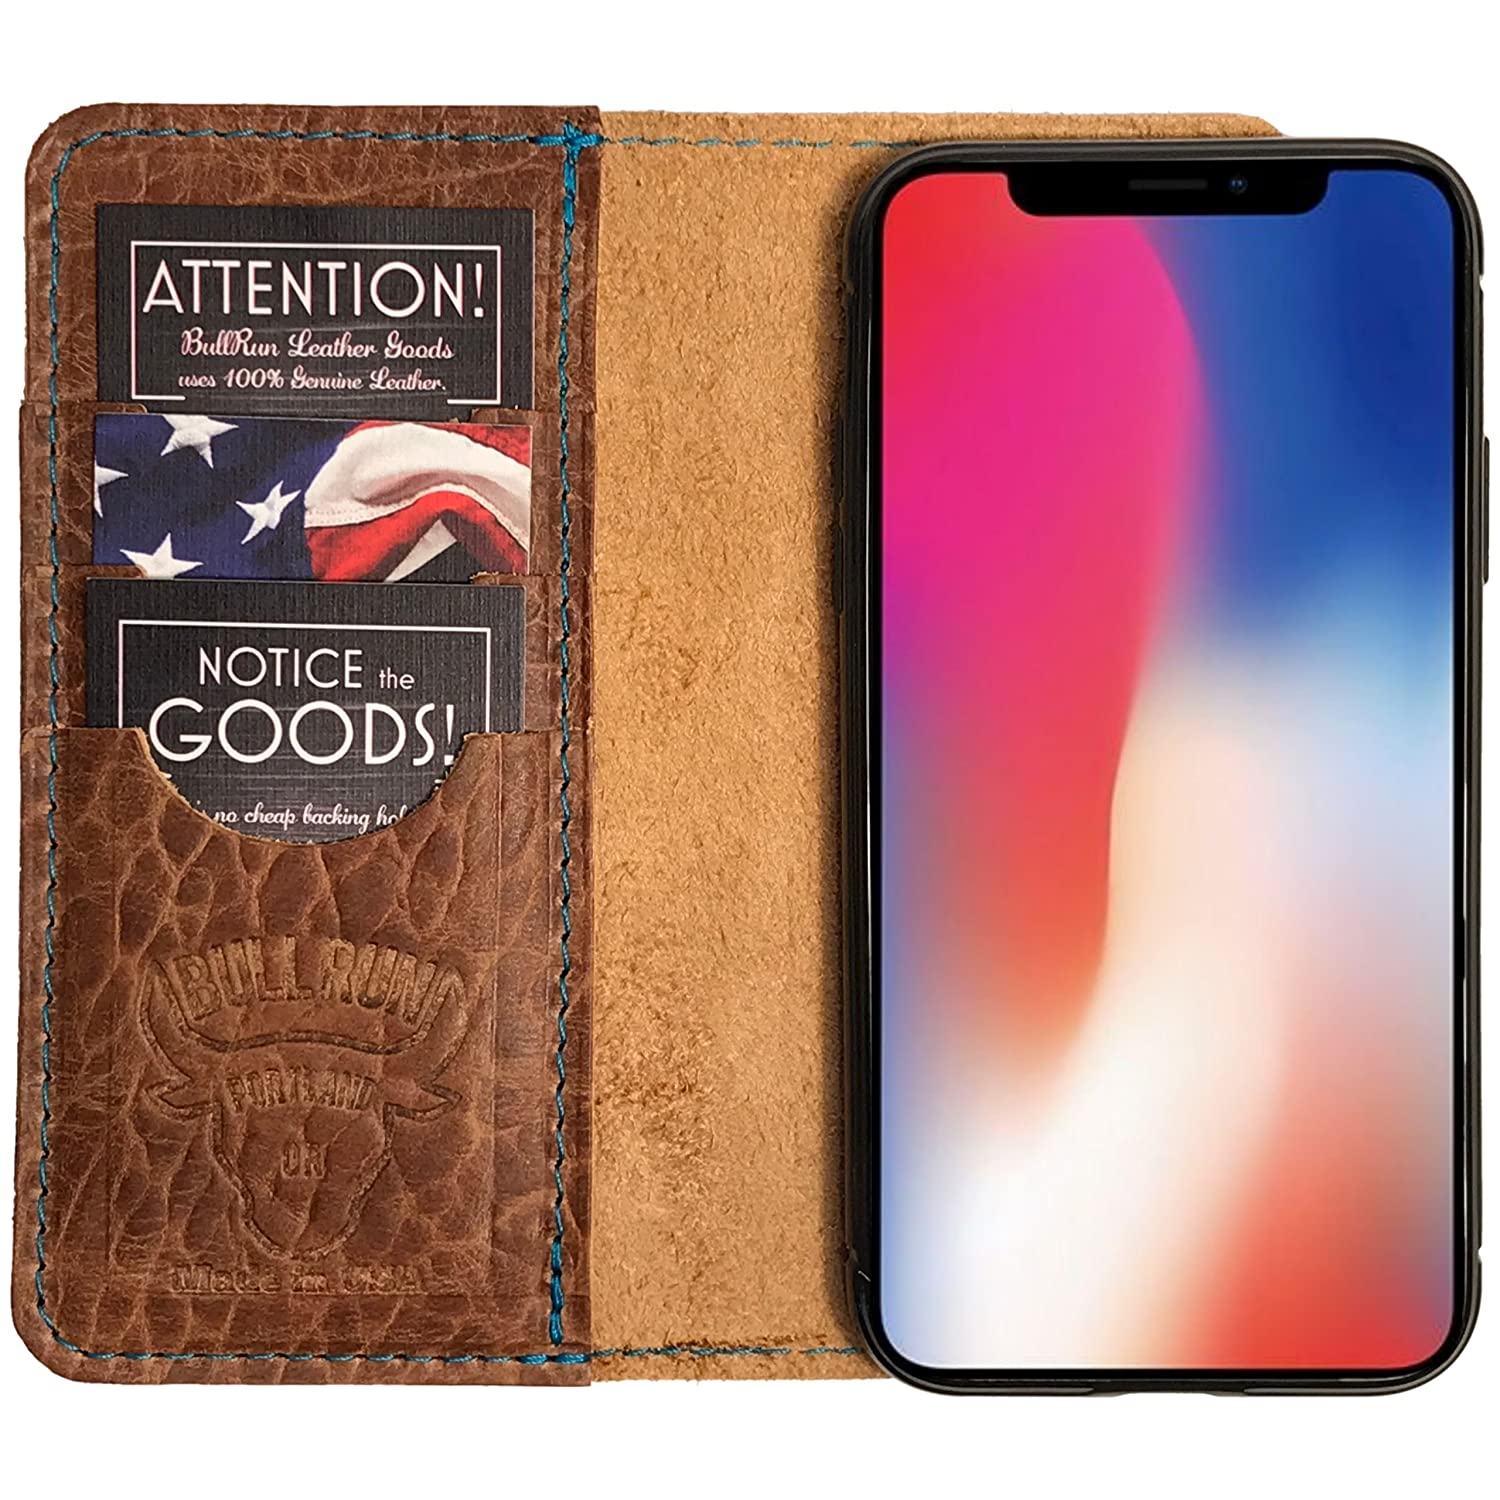 hot sale online cb520 d5caf iPhone X case, iPhone X Wallet Case Genuine Leather, Best Screen Protector,  Folio Case/iPhone X Flip Case, Distressed American Full Grain Leather, ...